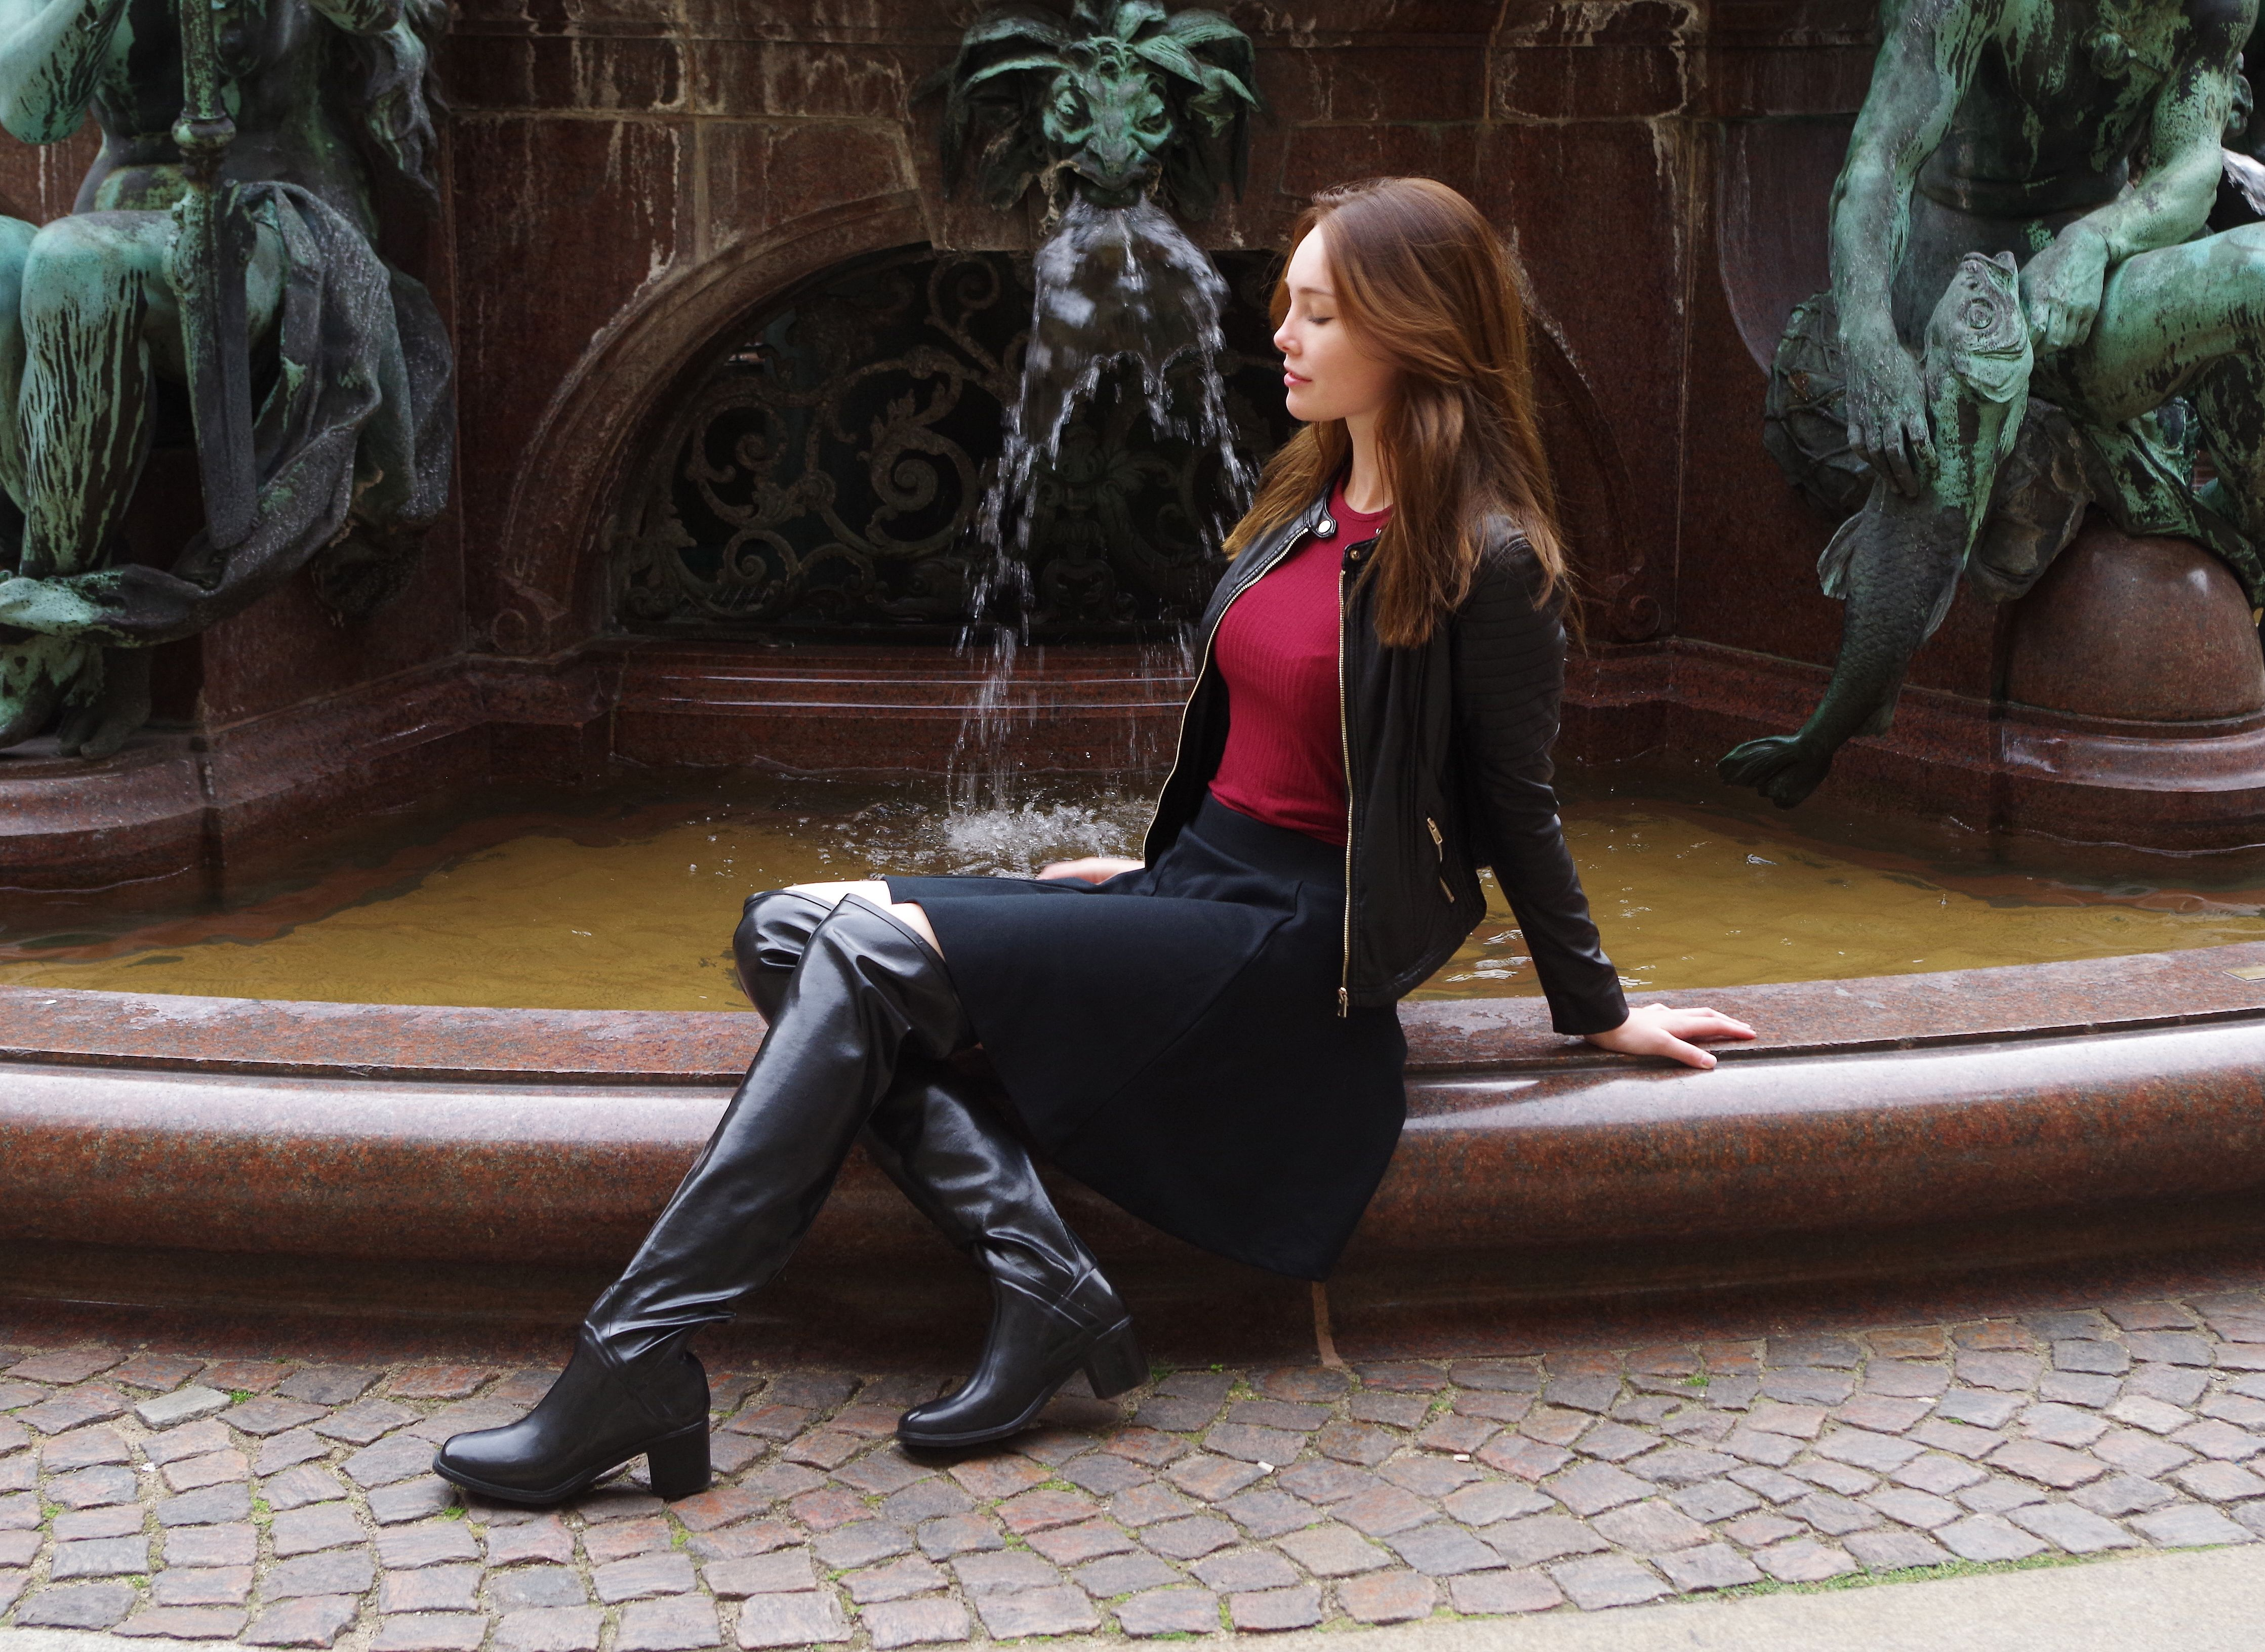 Lovely Acquo Boots We Ship World Wide Order Your Own Exclusive